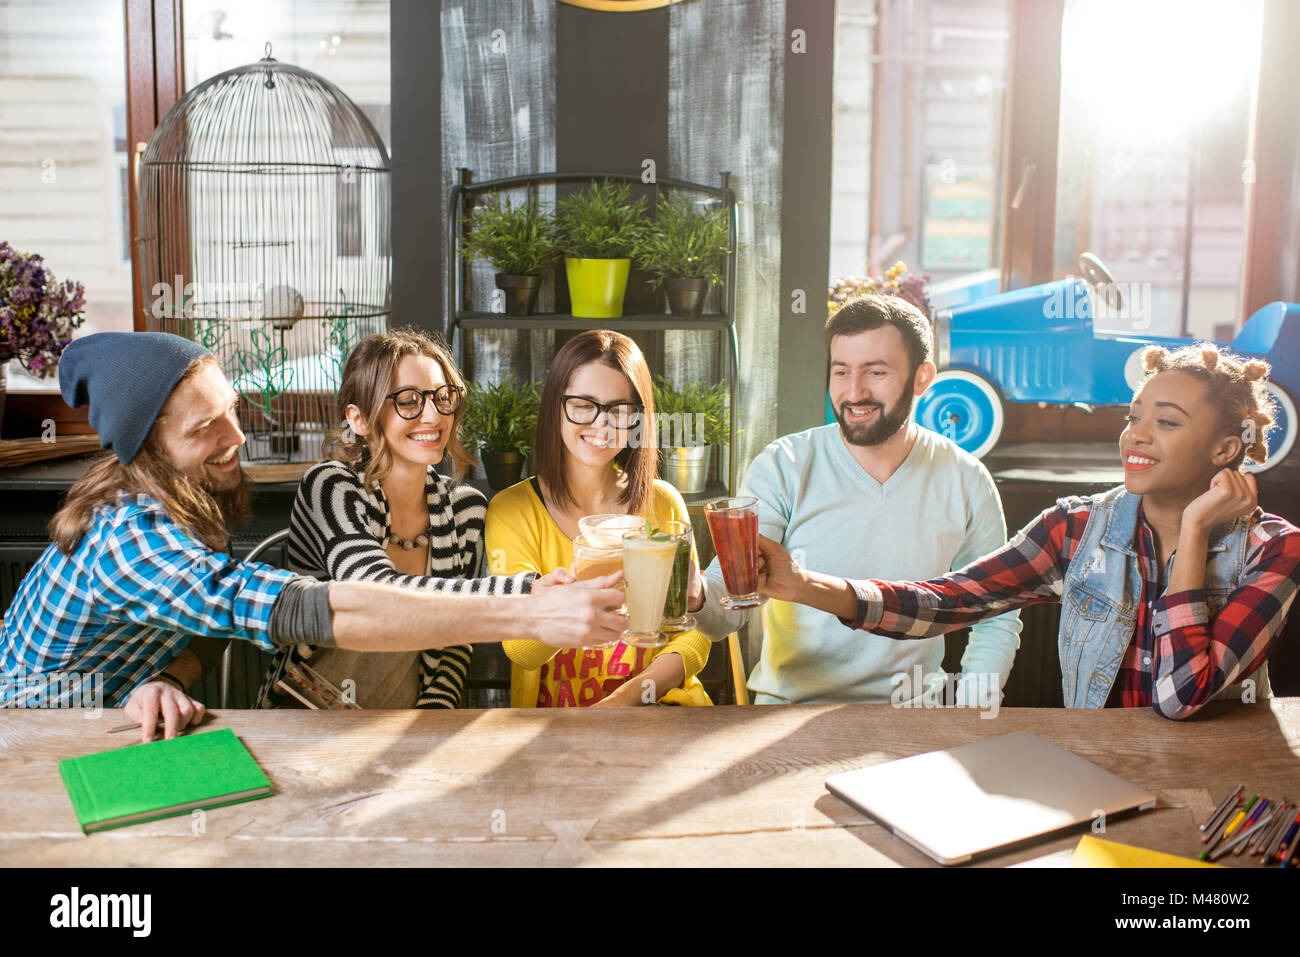 Friends clinking glasses in the modern cafe - Stock Image